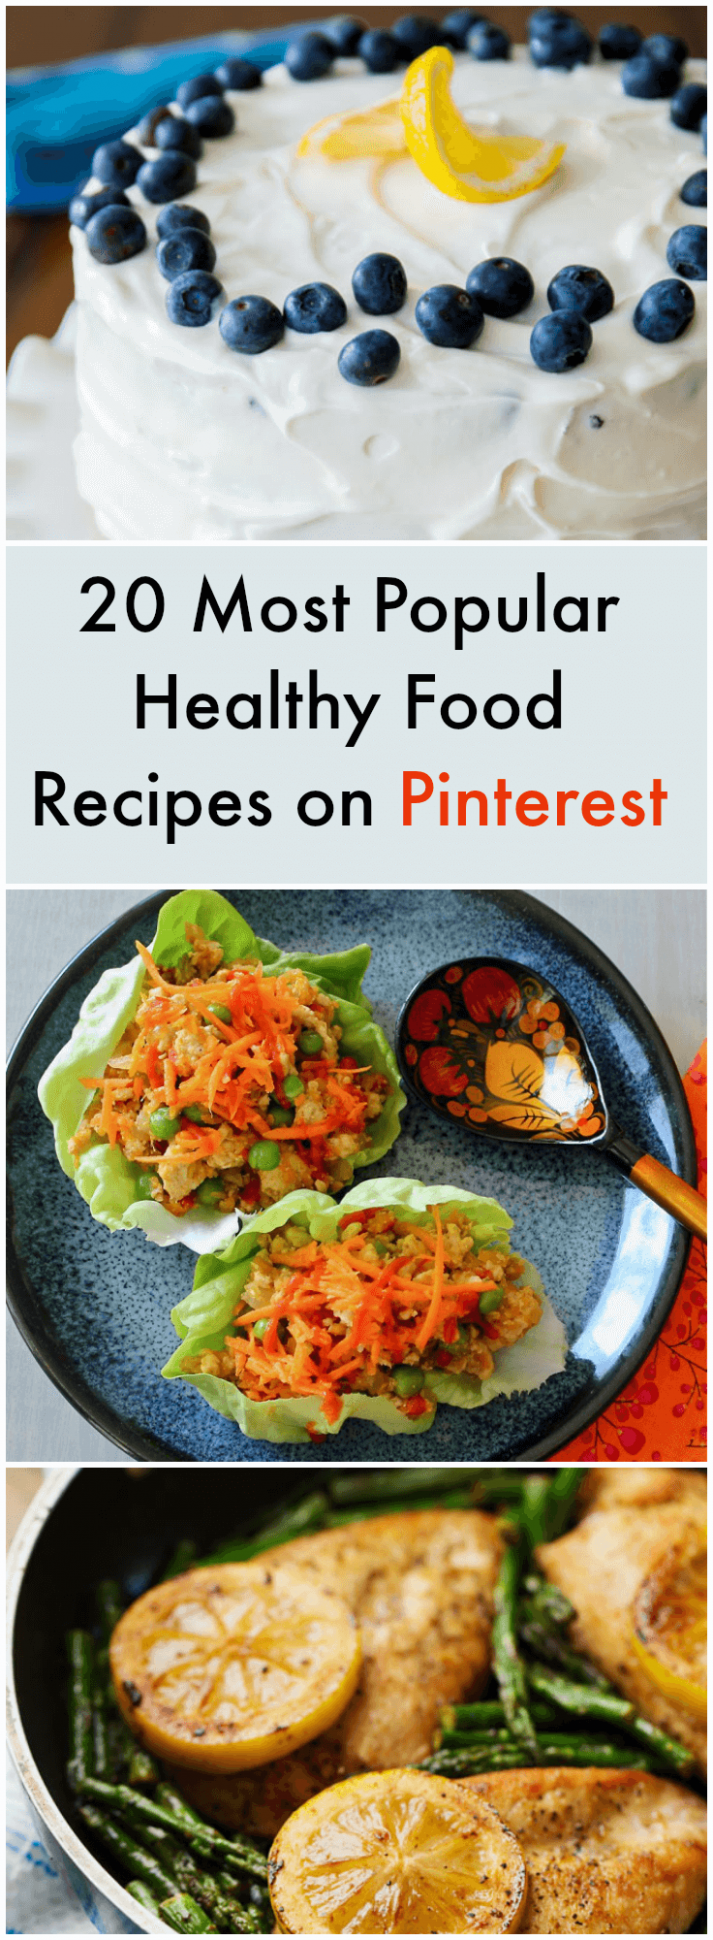 20 Most Popular Healthy Food Recipes on Pinterest - what are healthy food recipes